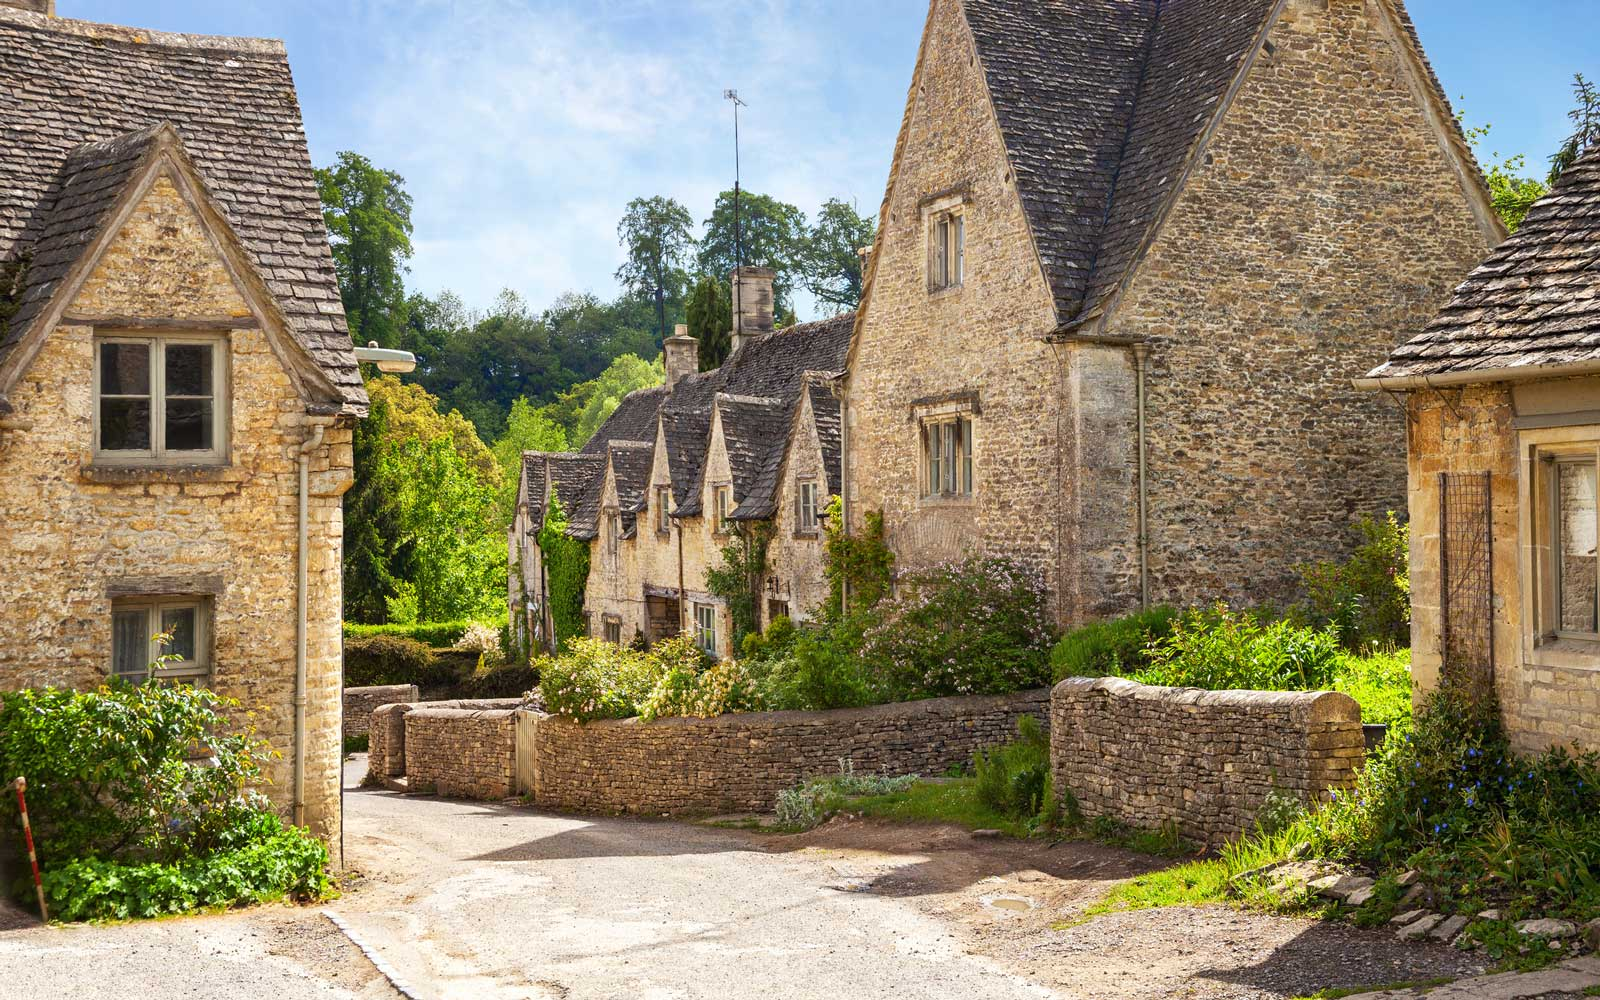 Save 30% on a Six-night Tour of London and the Cotswolds from Authentic Vacations